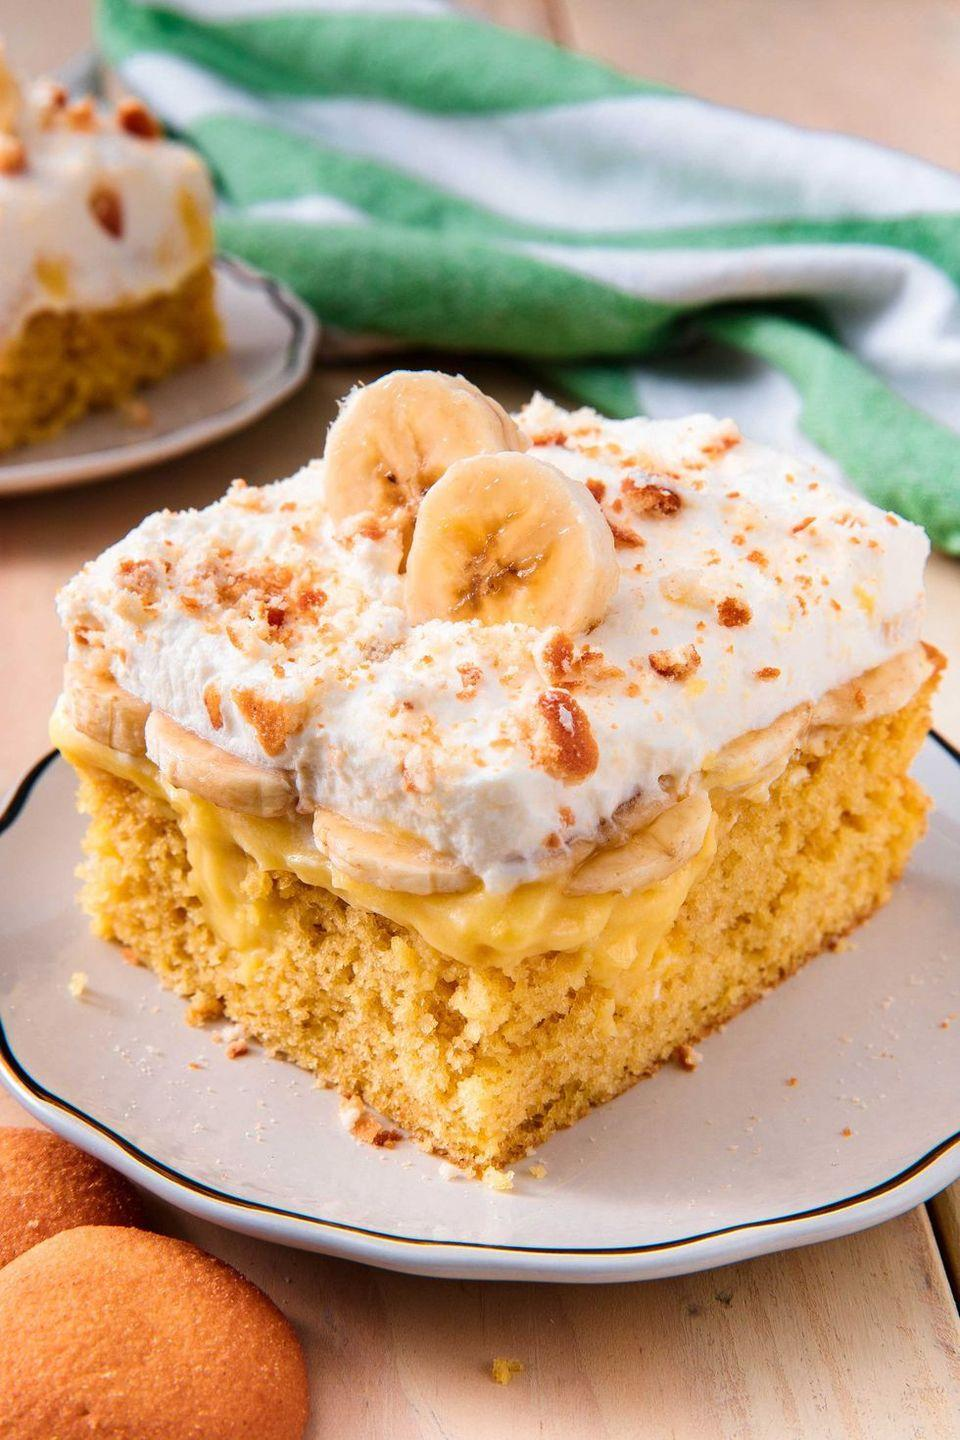 """<p>Get ready to go BANANAS over this.</p><p>Get the recipe from <a href=""""https://www.delish.com/cooking/recipe-ideas/recipes/a51407/banana-pudding-poke-cake-recipe/"""" rel=""""nofollow noopener"""" target=""""_blank"""" data-ylk=""""slk:Delish"""" class=""""link rapid-noclick-resp"""">Delish</a>.</p>"""